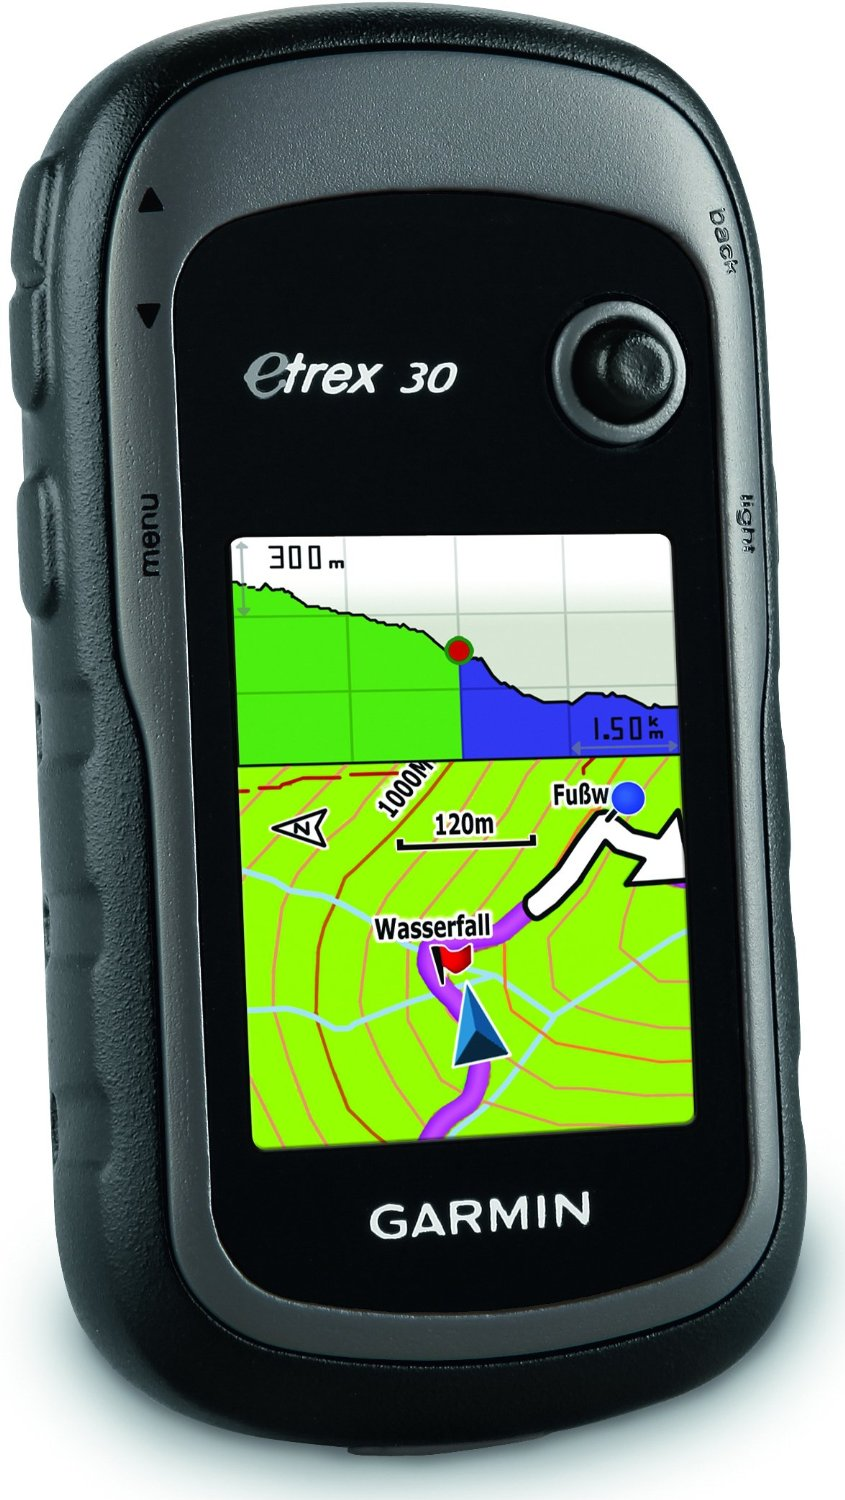 Garmin Etrex 30 GPS Receiver Outdoor Handheld Mapping Unit + Worldwide Basemap | Sustuu